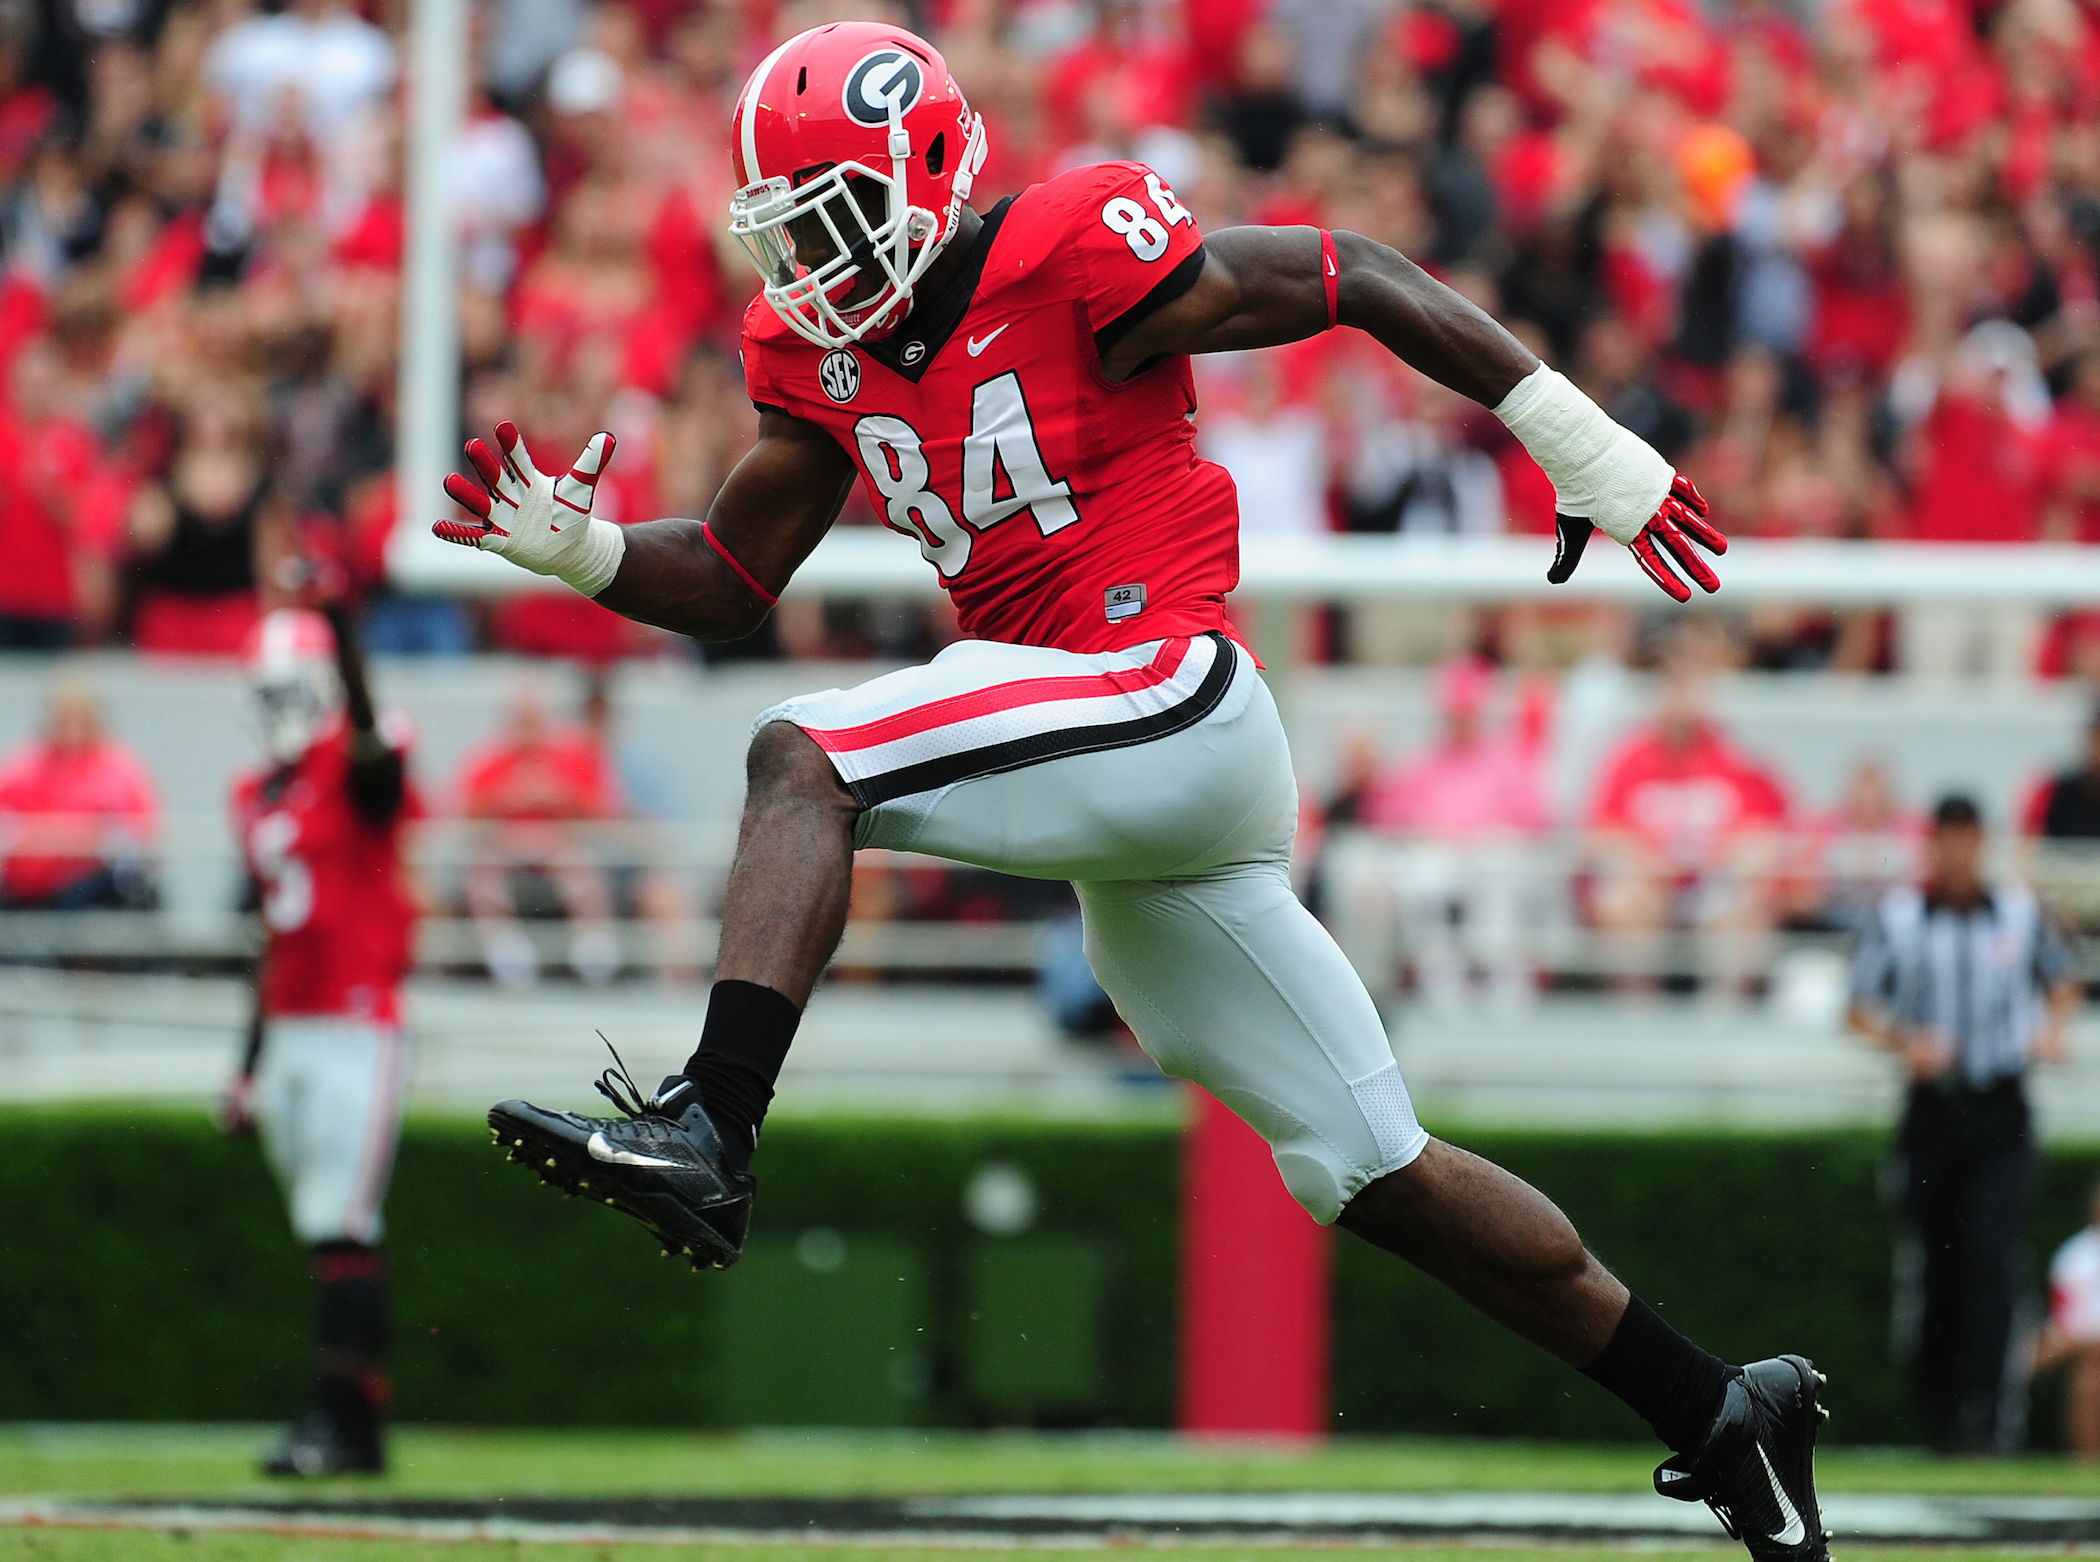 ATHENS, GA - SEPTEMBER 21: Leonard Floyd #84 of the Georgia Bulldogs celebrates after making a tackle against the North Texas Mean Green at Sanford Stadium on September 21, 2013 in Athens, Georgia. (Photo by Scott Cunningham/Getty Images) *** Local Caption *** Leonard Floyd